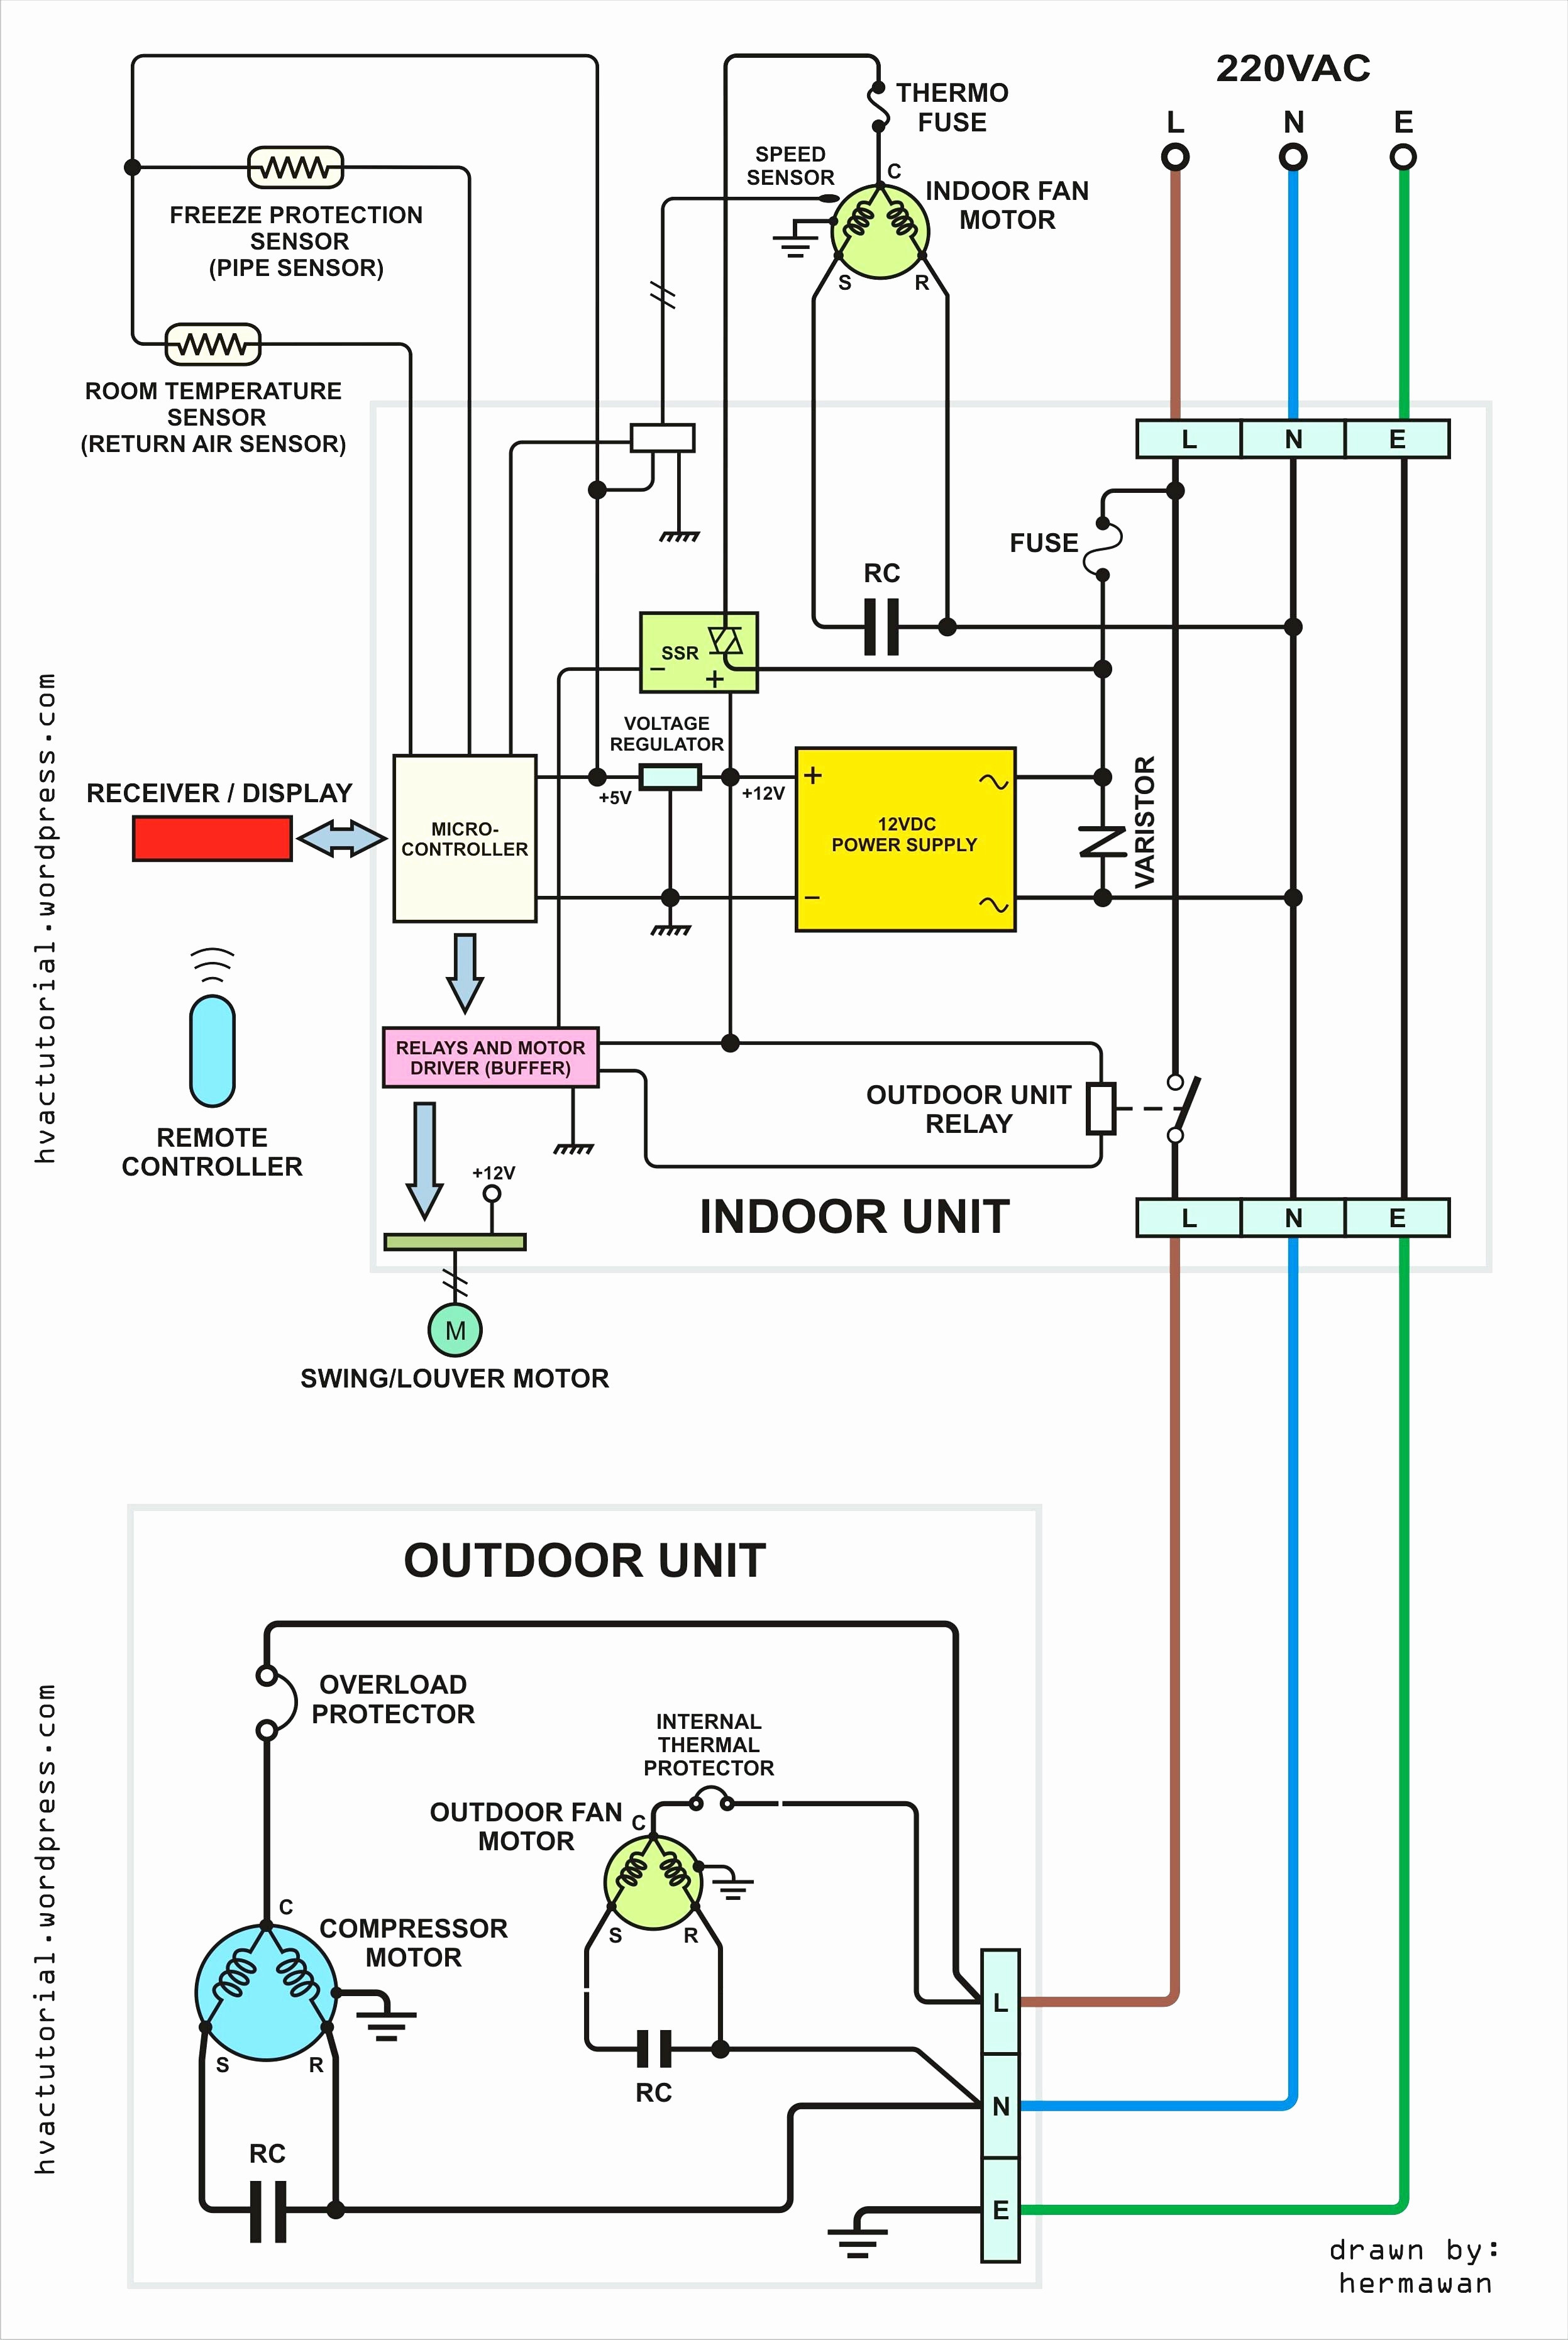 Circuit Diagram Open Source - Wiring Diagrams Show